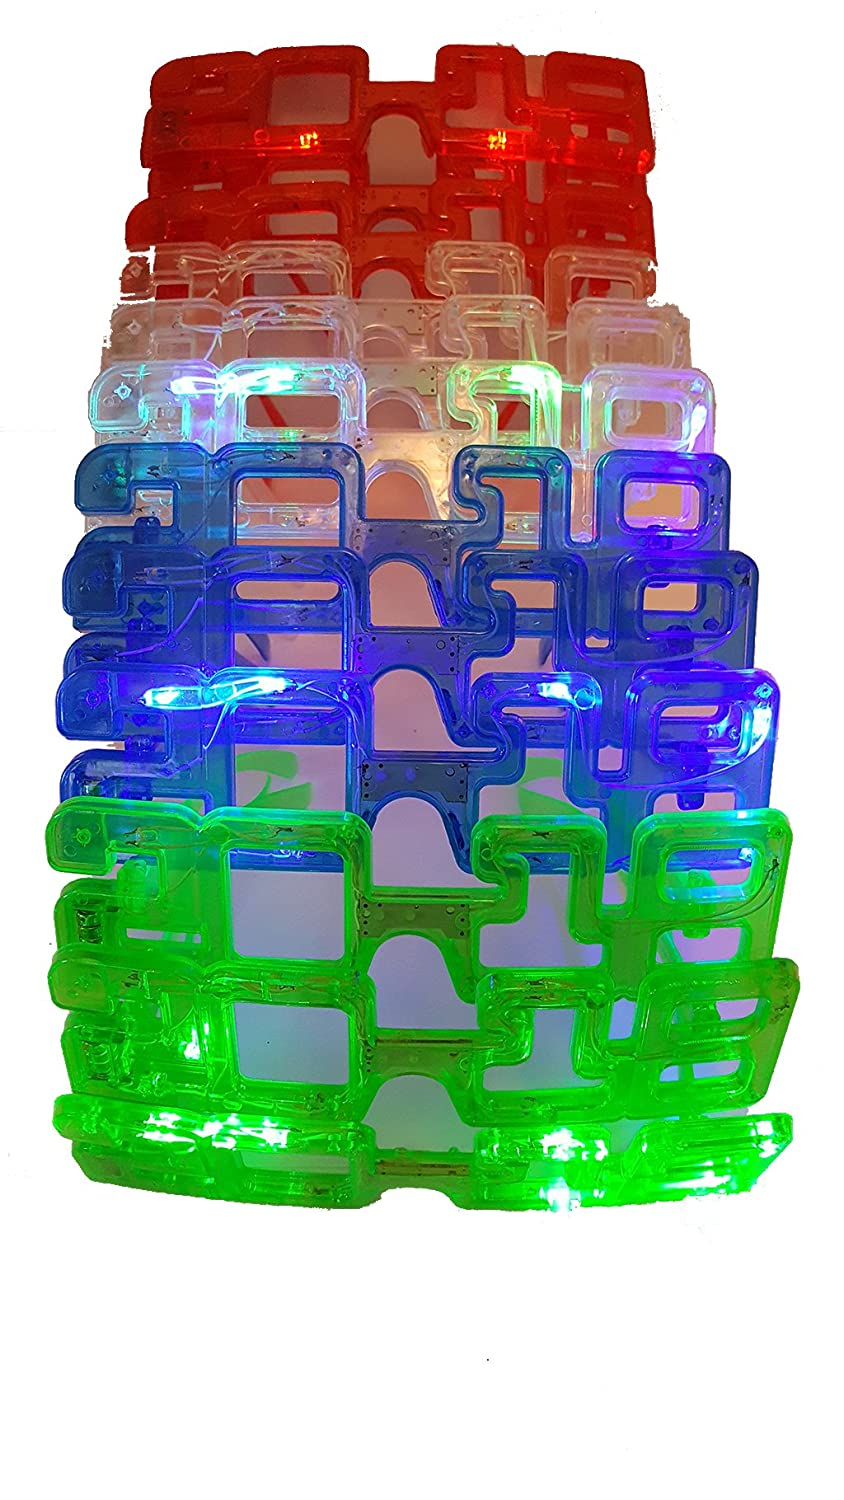 2018 Happy New Years Eve Glasses Light Up Times Square Jumbo Flashing Led Lights With 1 Dozen 12 In A Pack Assorted Colors Sold By